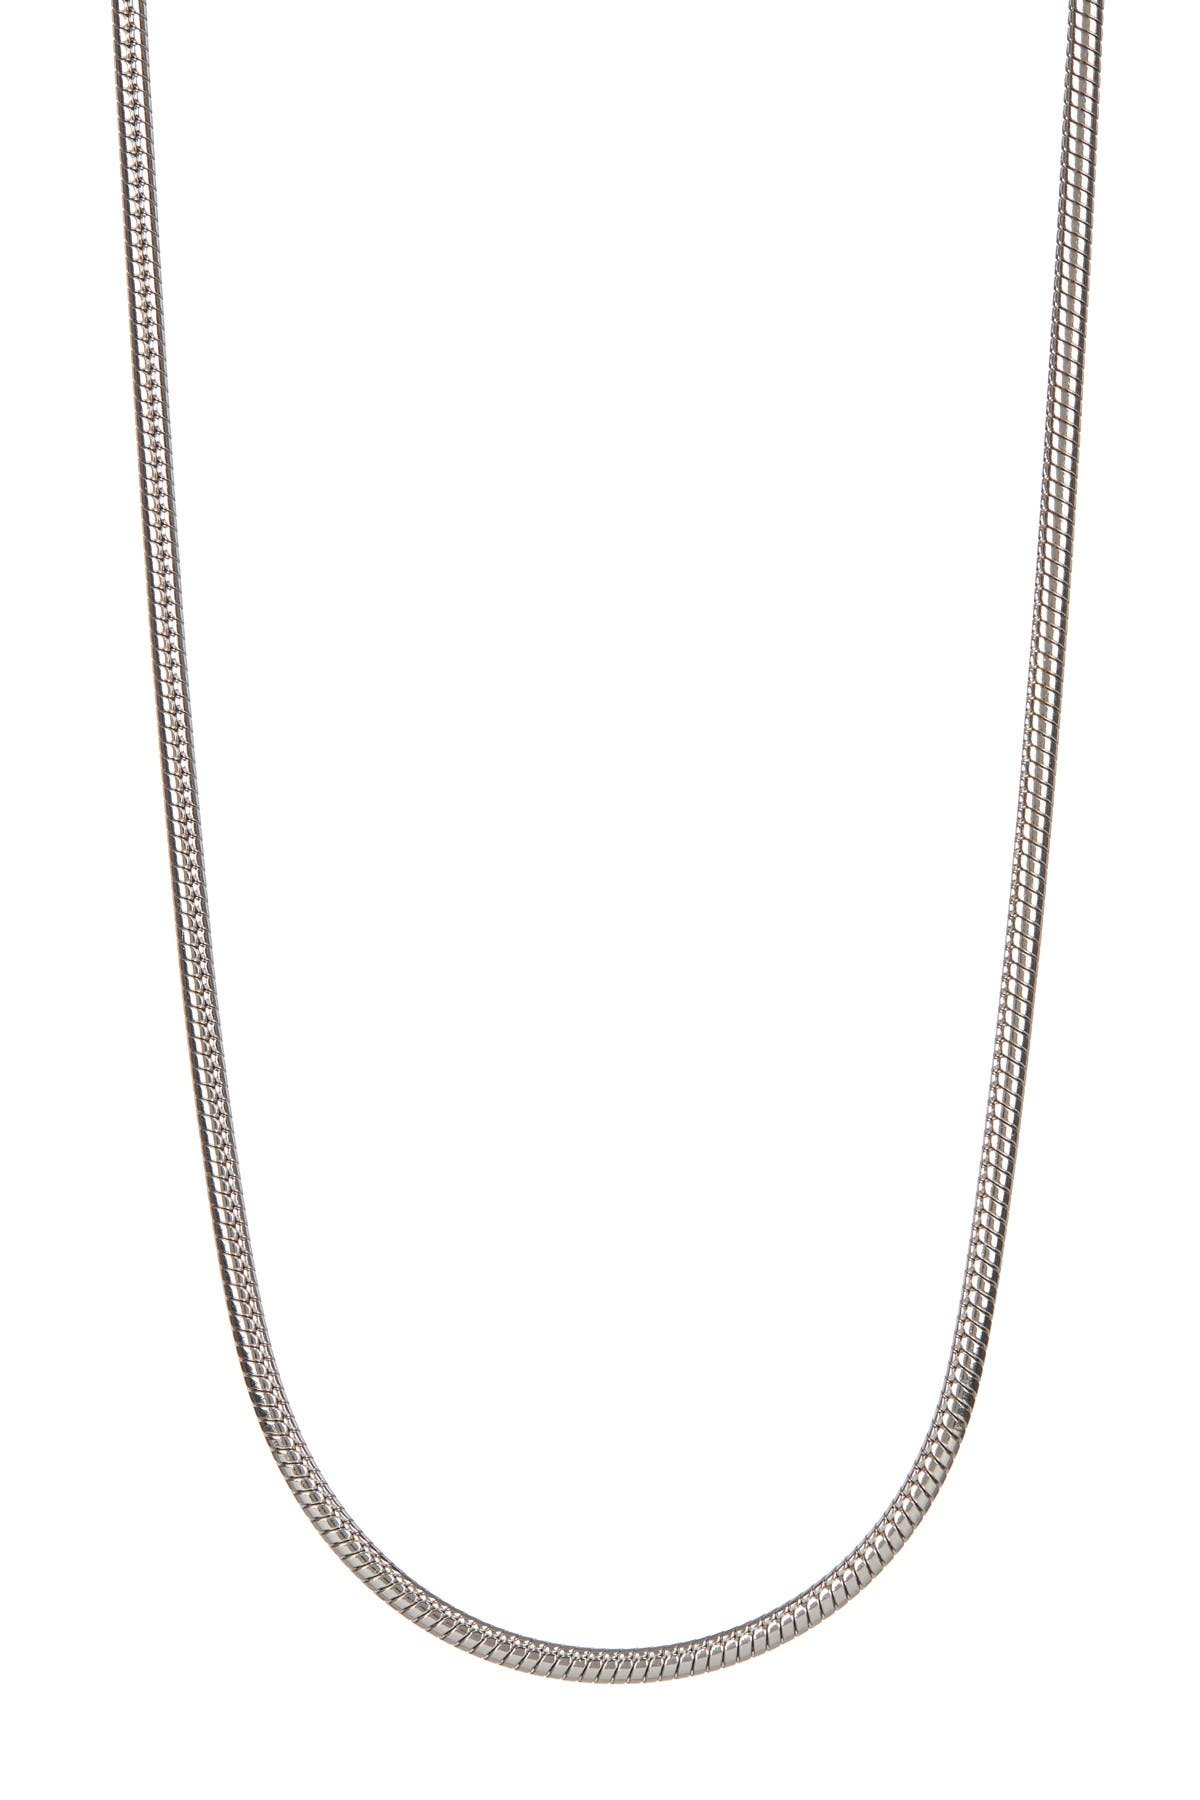 Image of BREUNING Sterling Silver Snake Chain